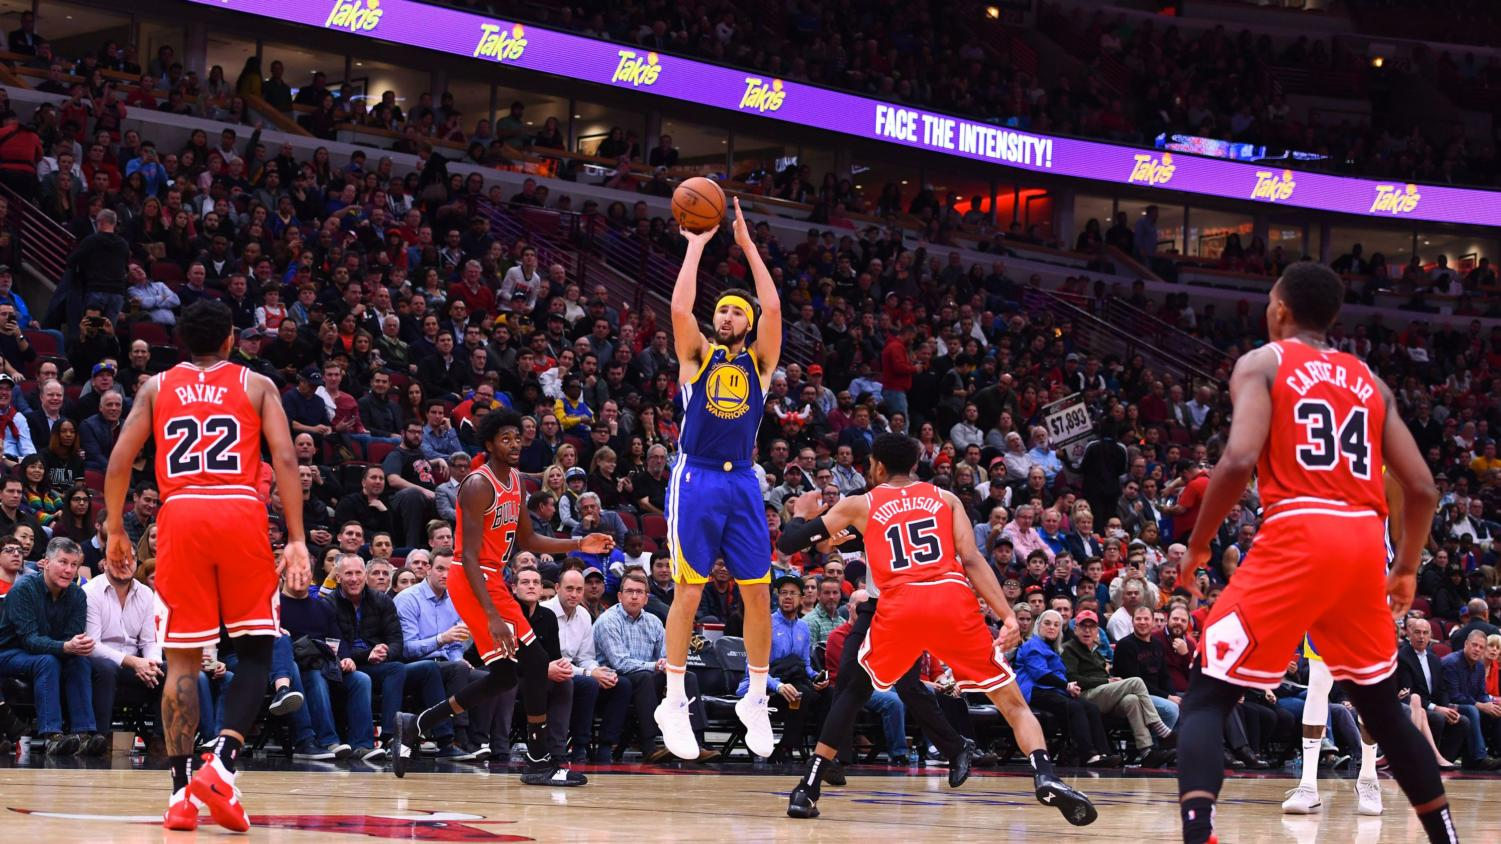 Klay Thompson breaks the record for NBA 3 pointers made in a game. Photo labelled for reuse.